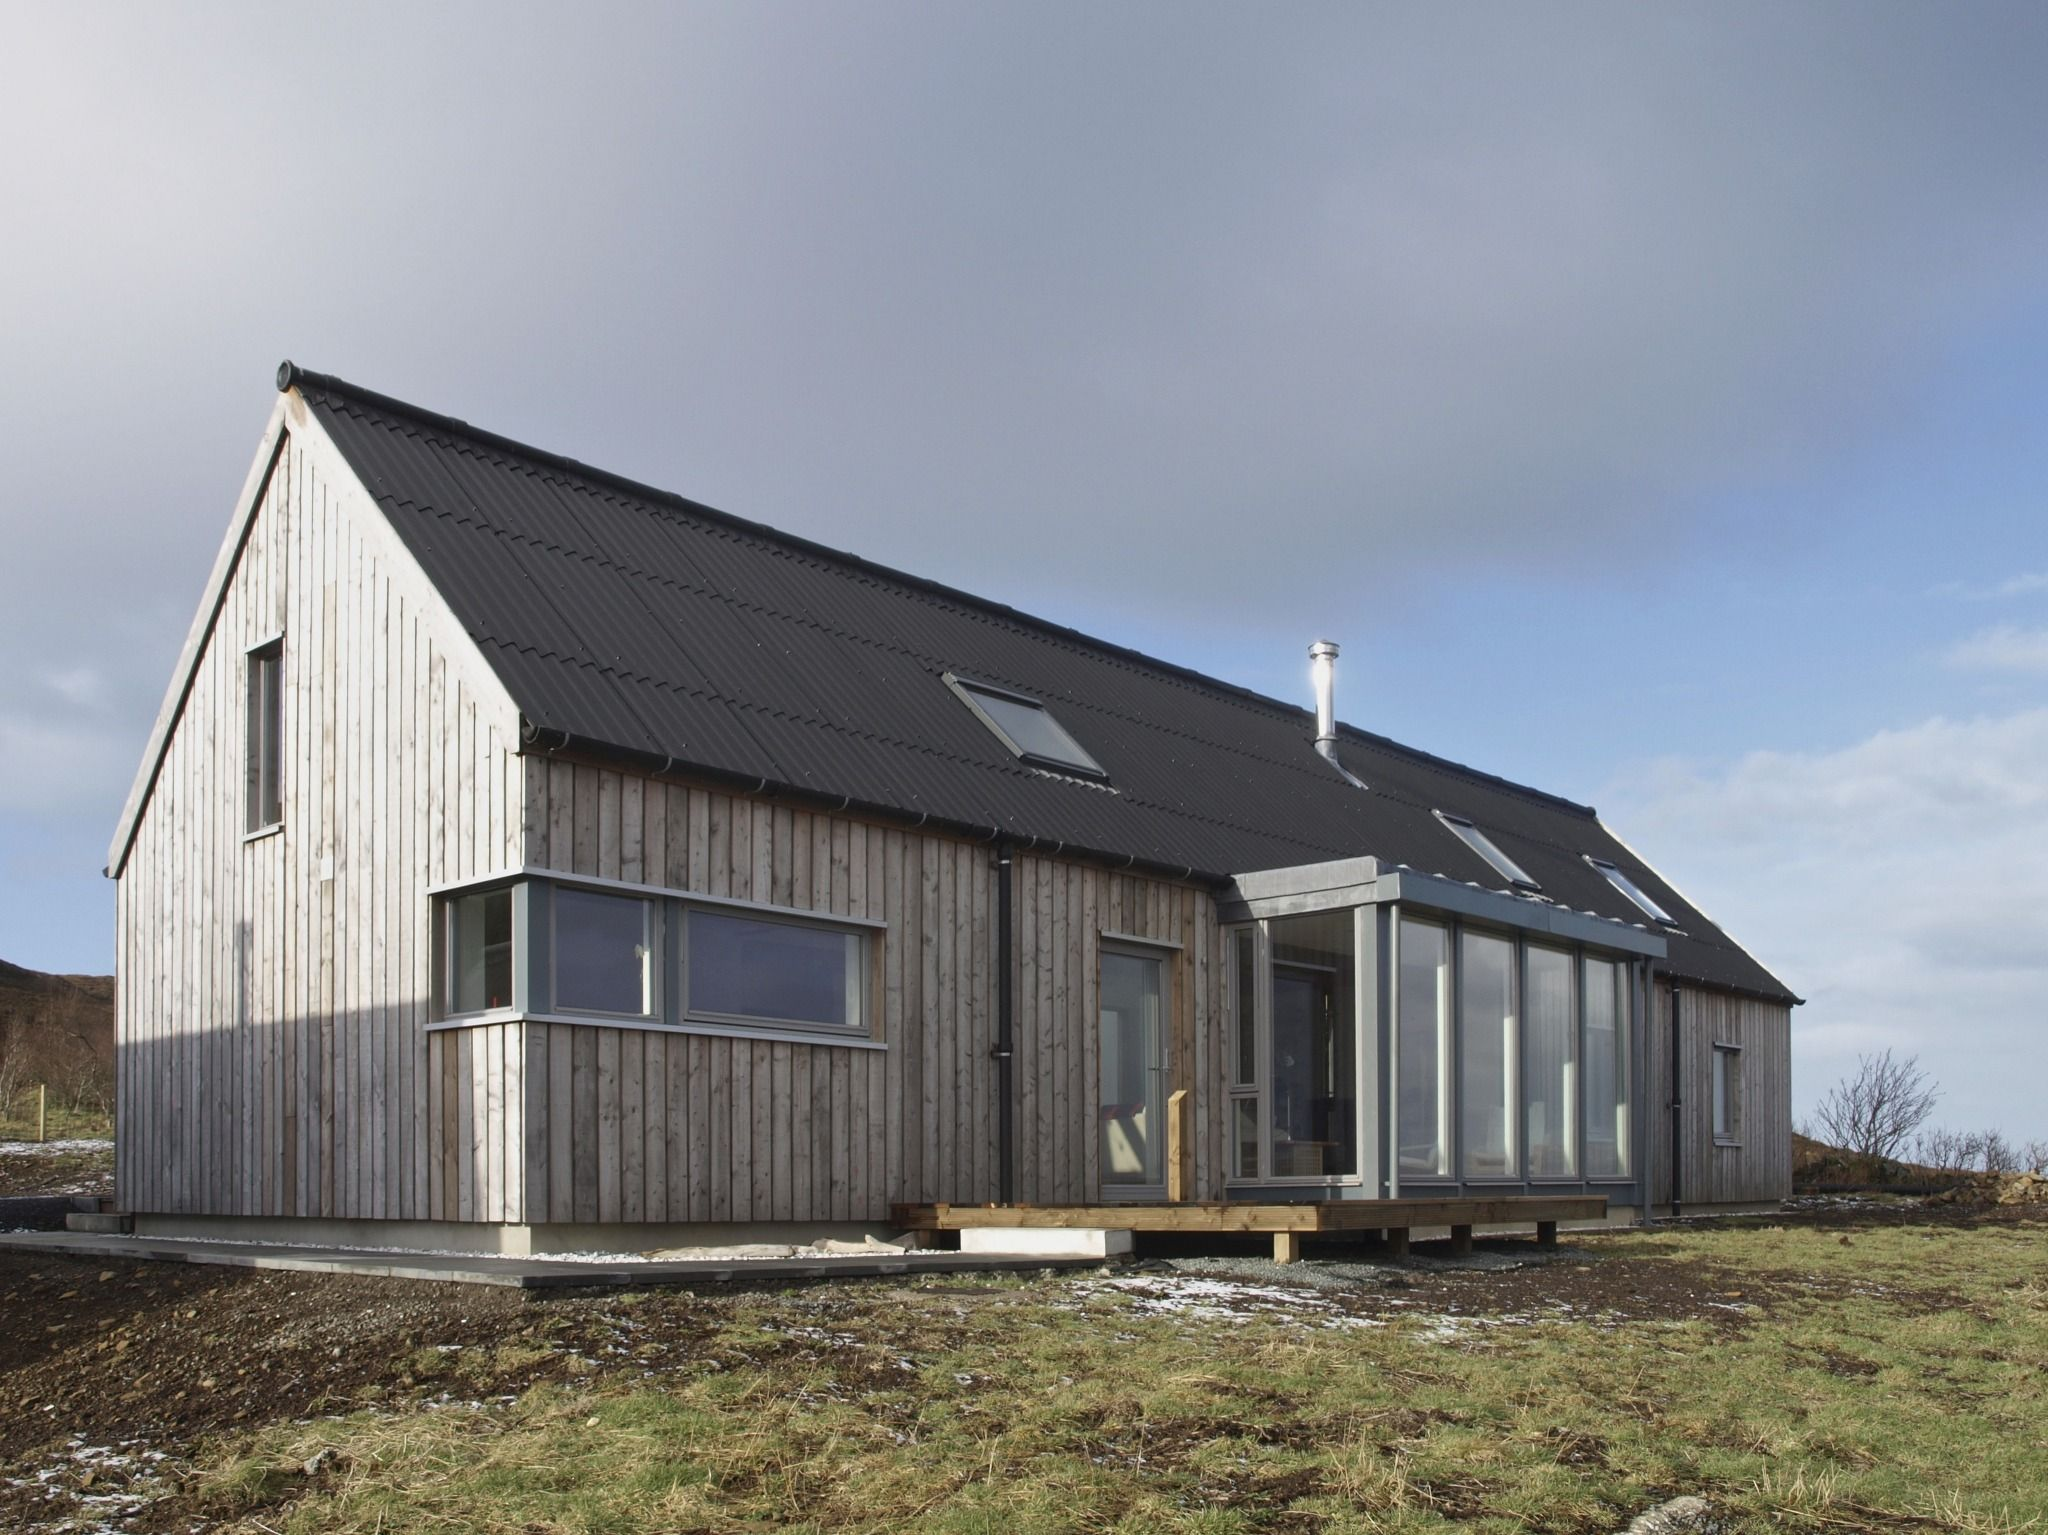 House design rural - Husabost The Long House Rural Design Architects Isle Of Skye And The Highlands